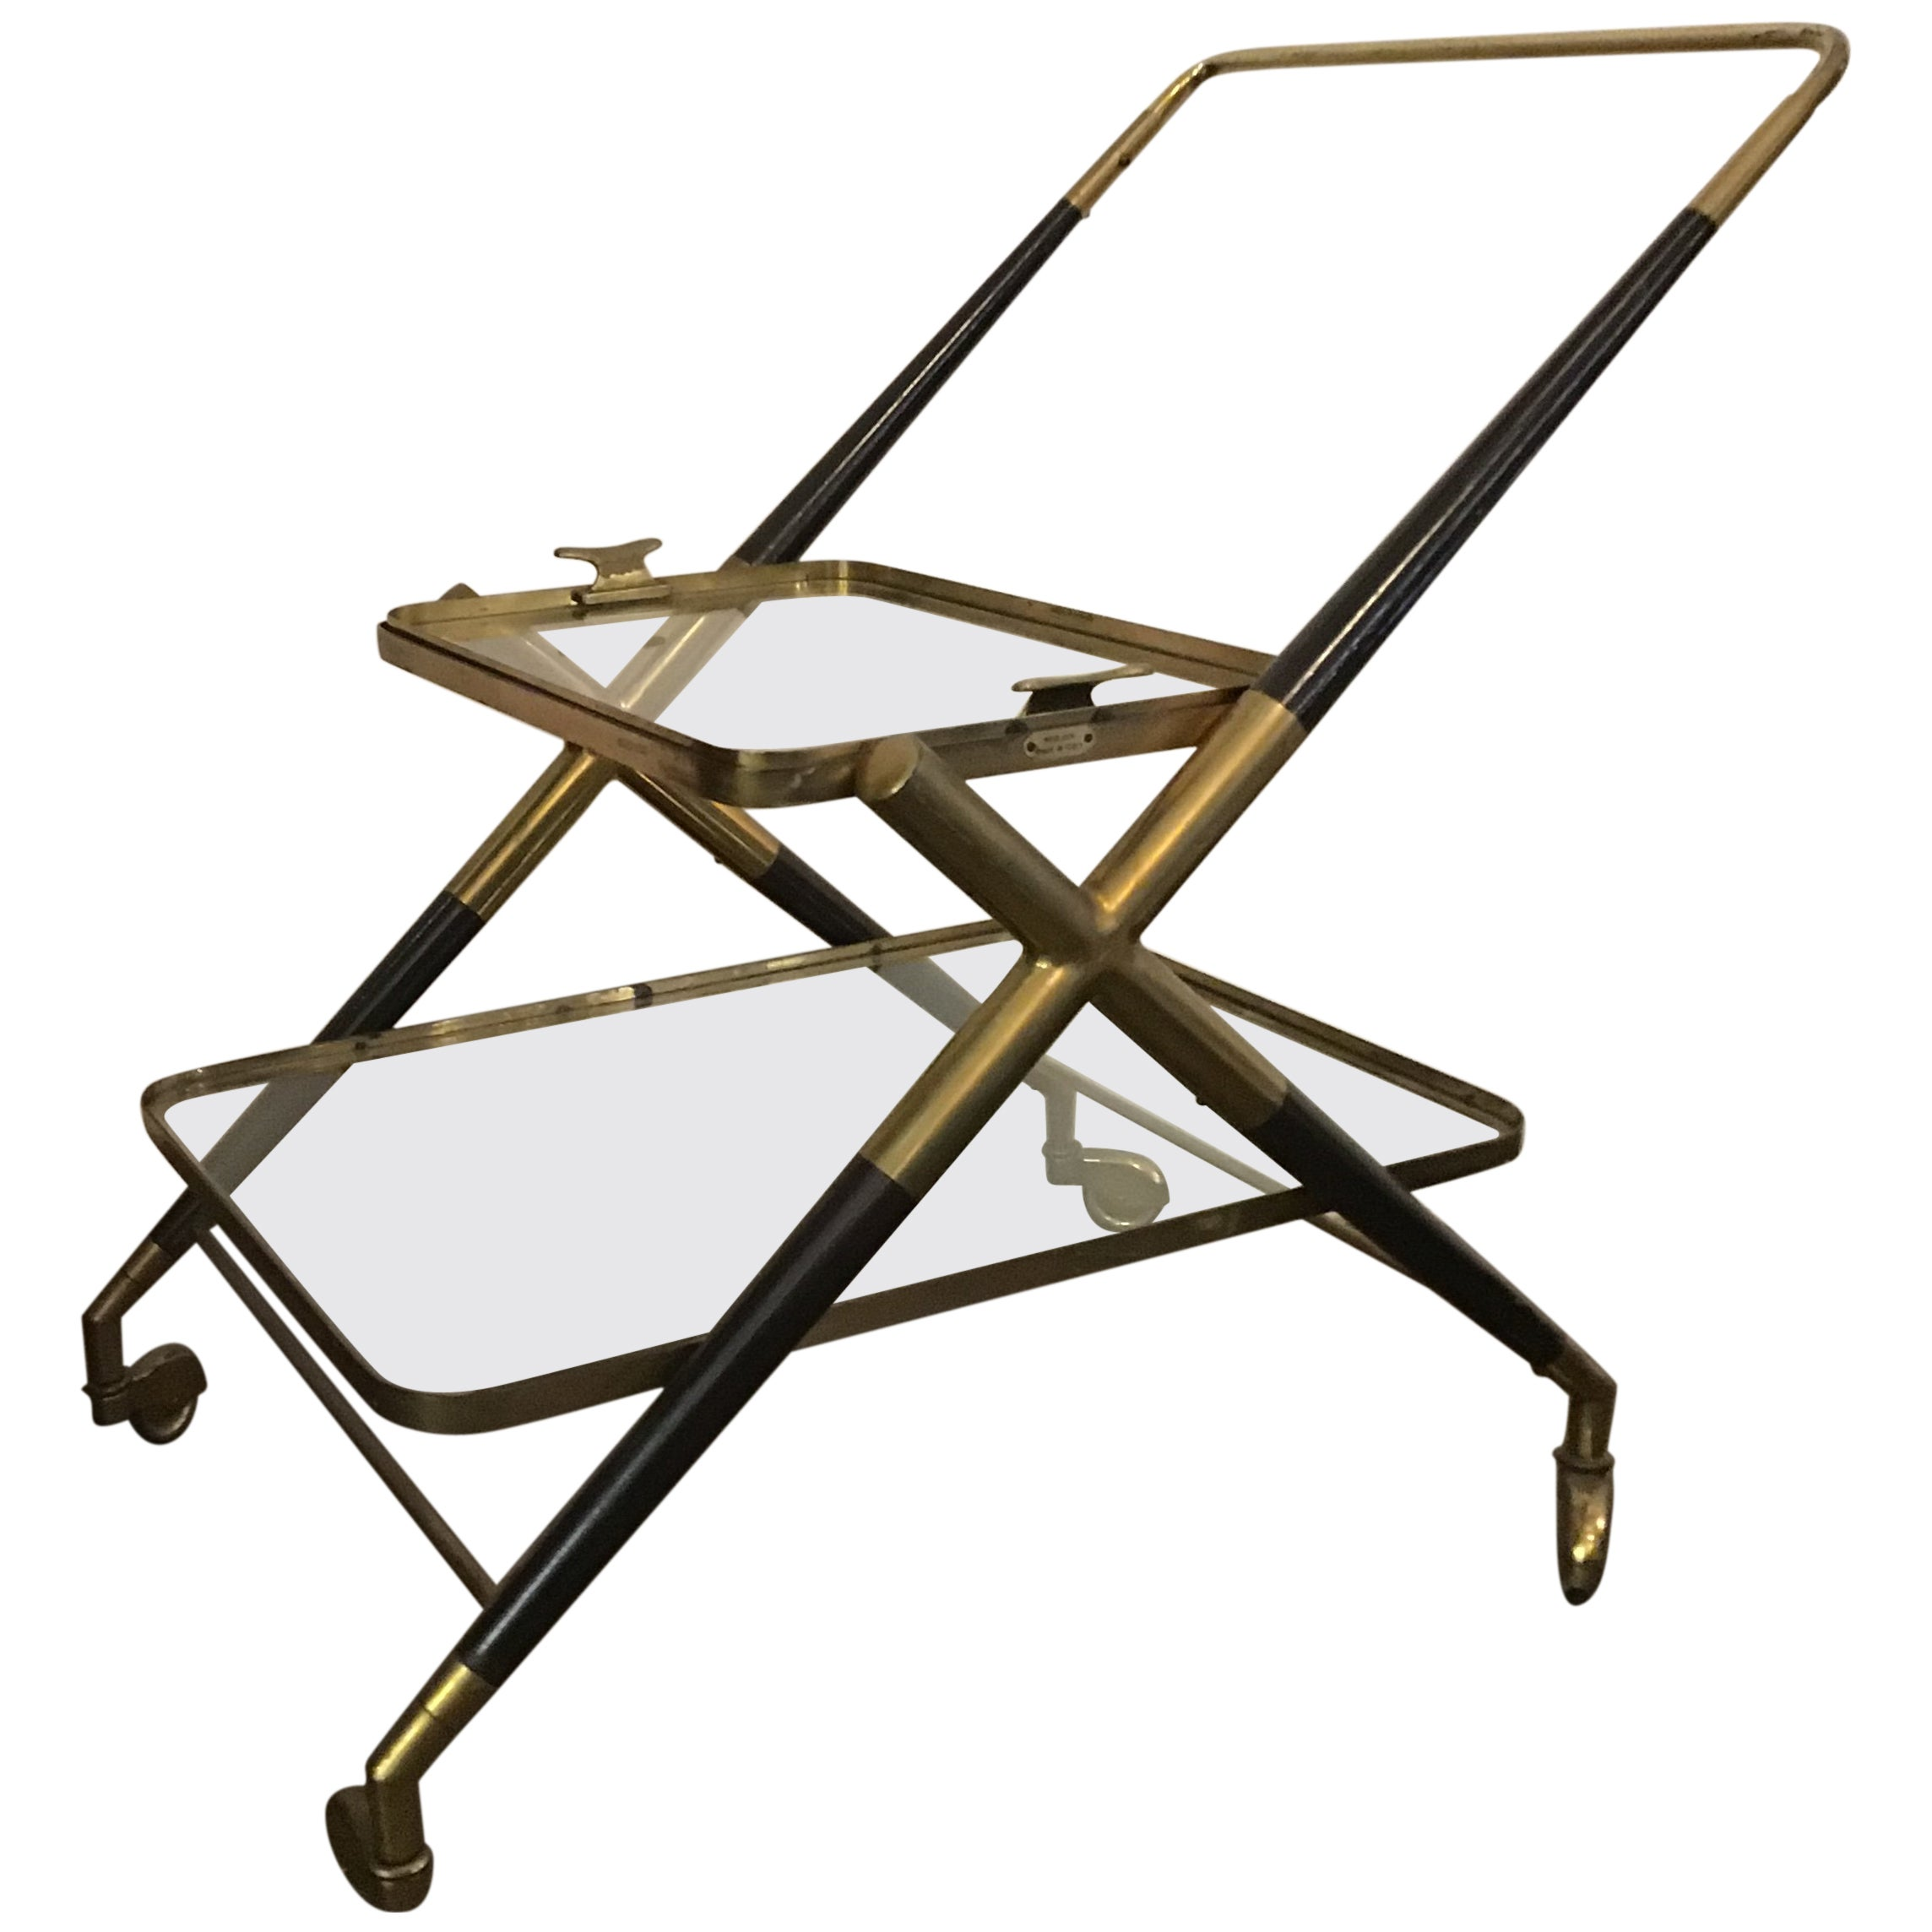 1950s Cesare Lacca Drinks Trolley